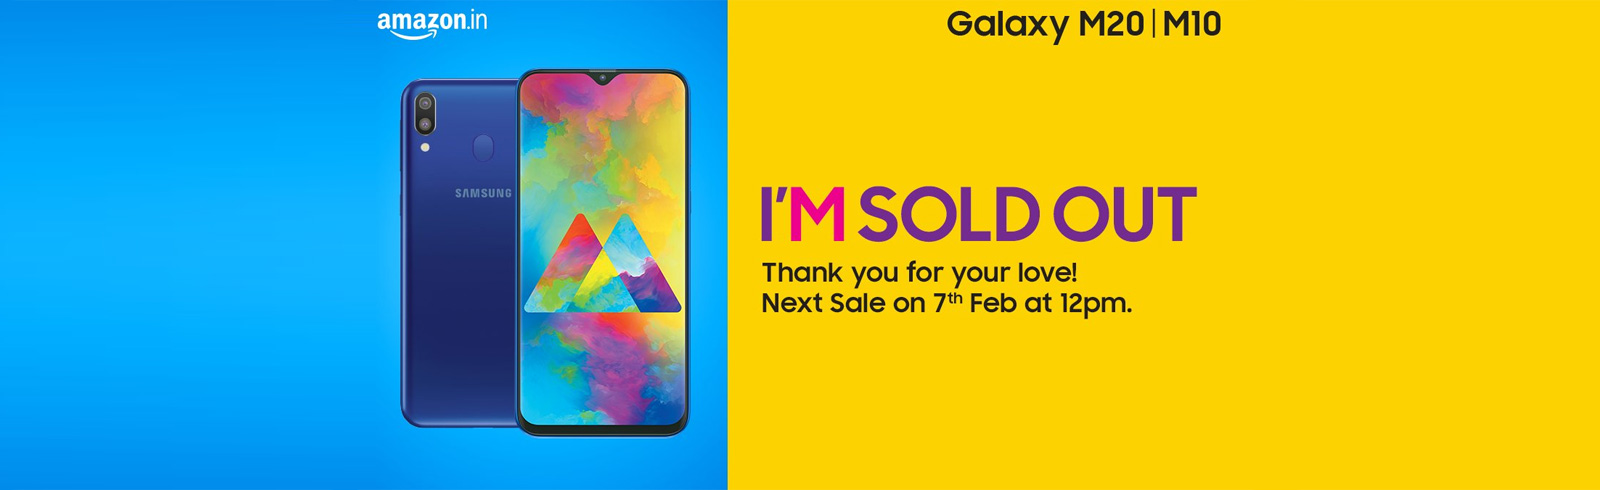 Samsung India says the Galaxy M10 and Galaxy M20 have been sold out instantly